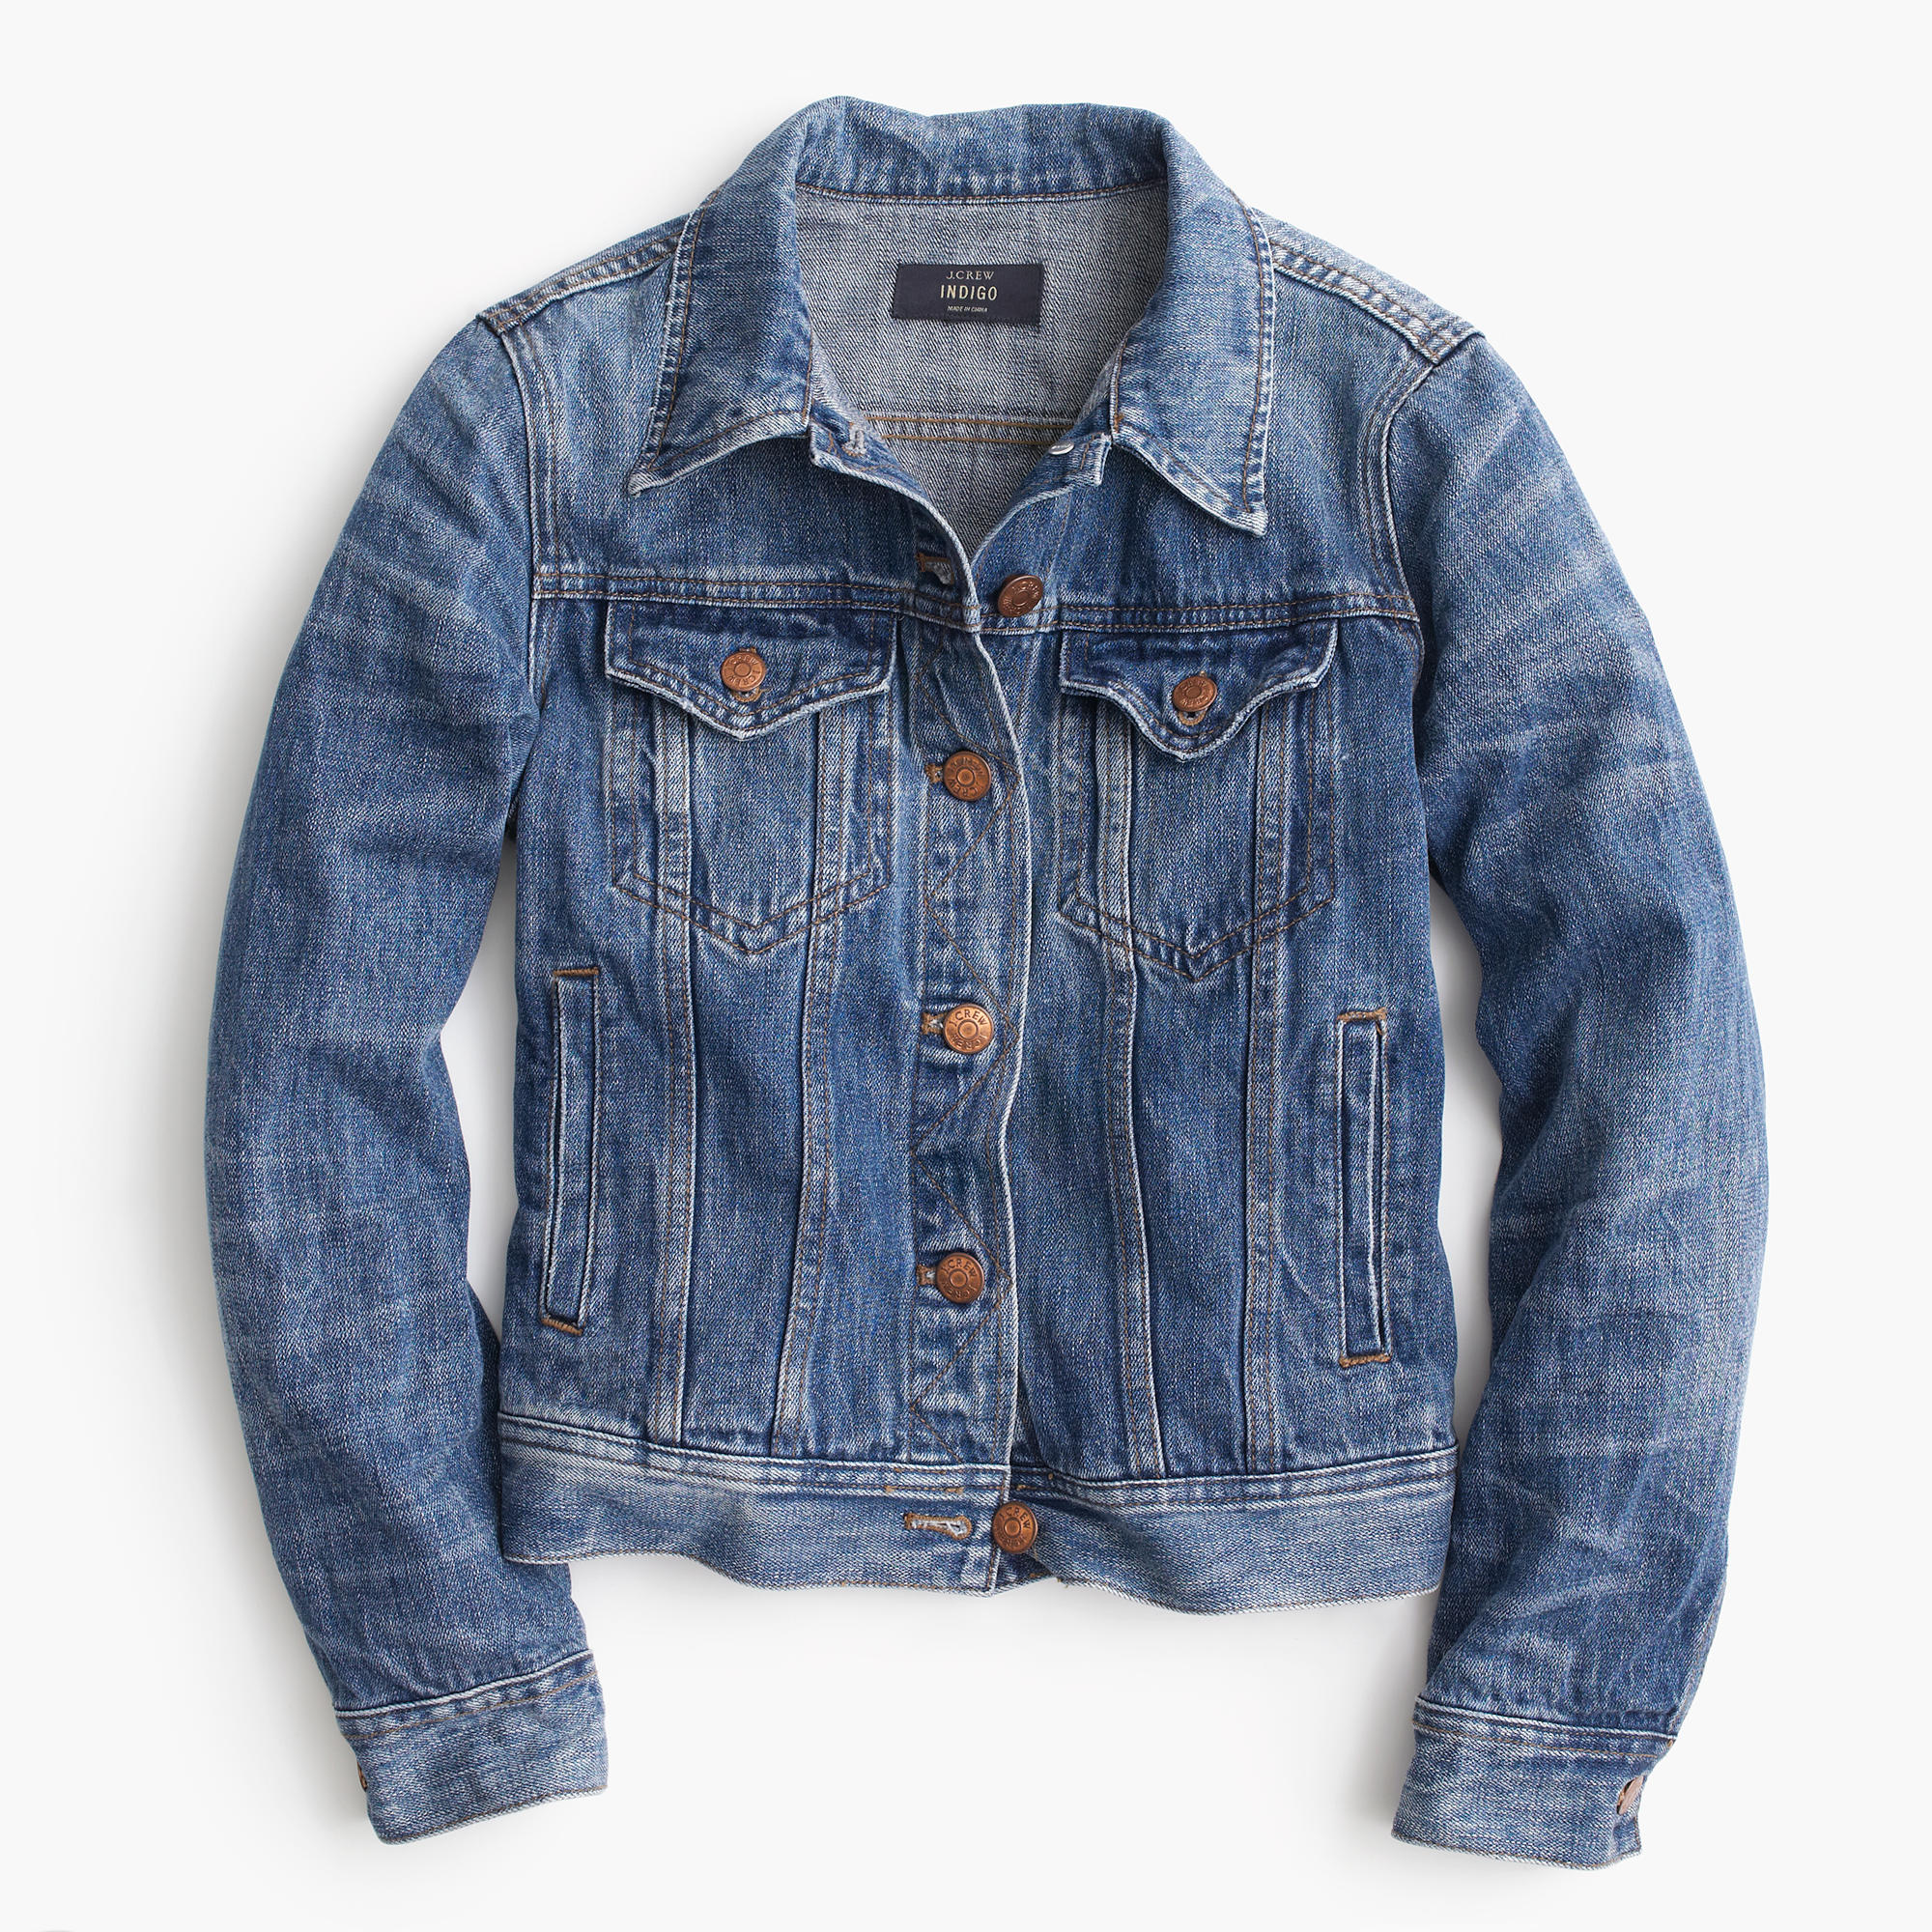 Denim Jacket In Tyler Wash : Women's Coats & Jackets | J.Crew